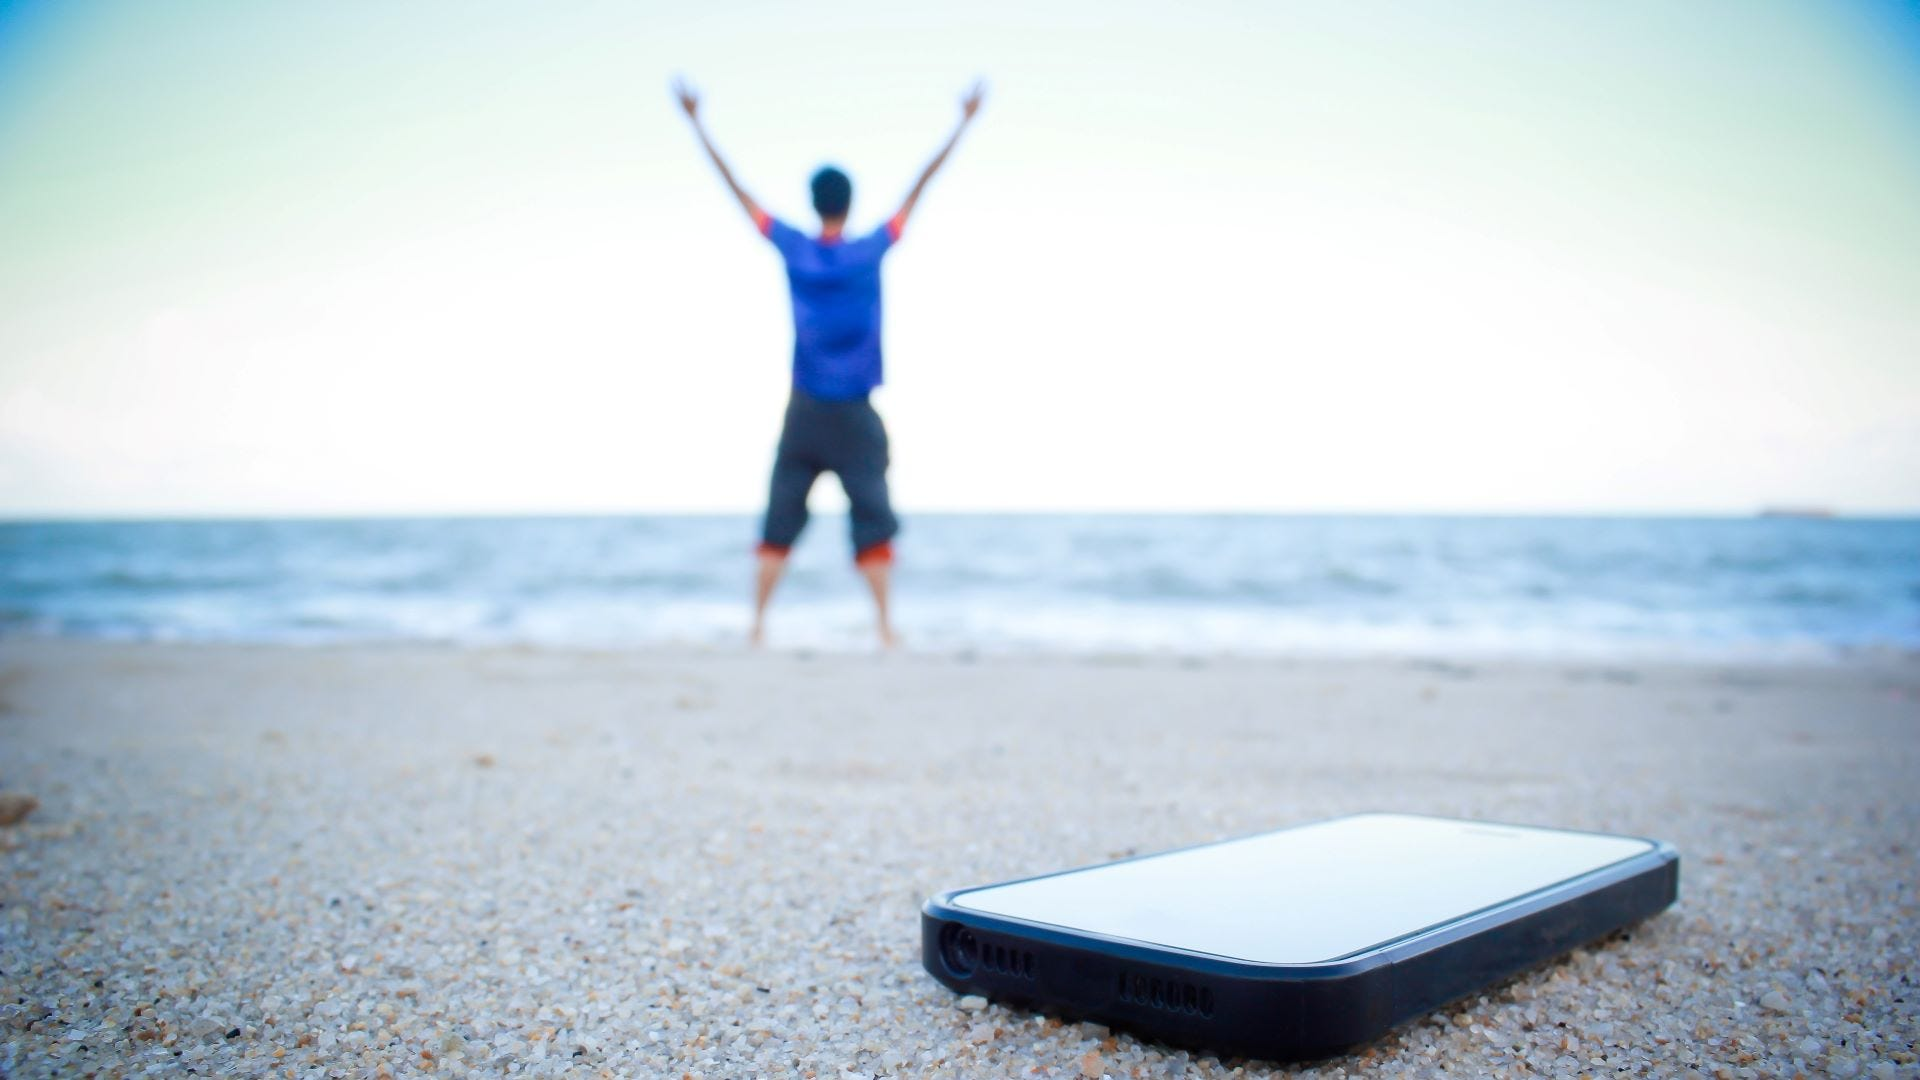 Man at the beach, his phone lying behind him in the sand.